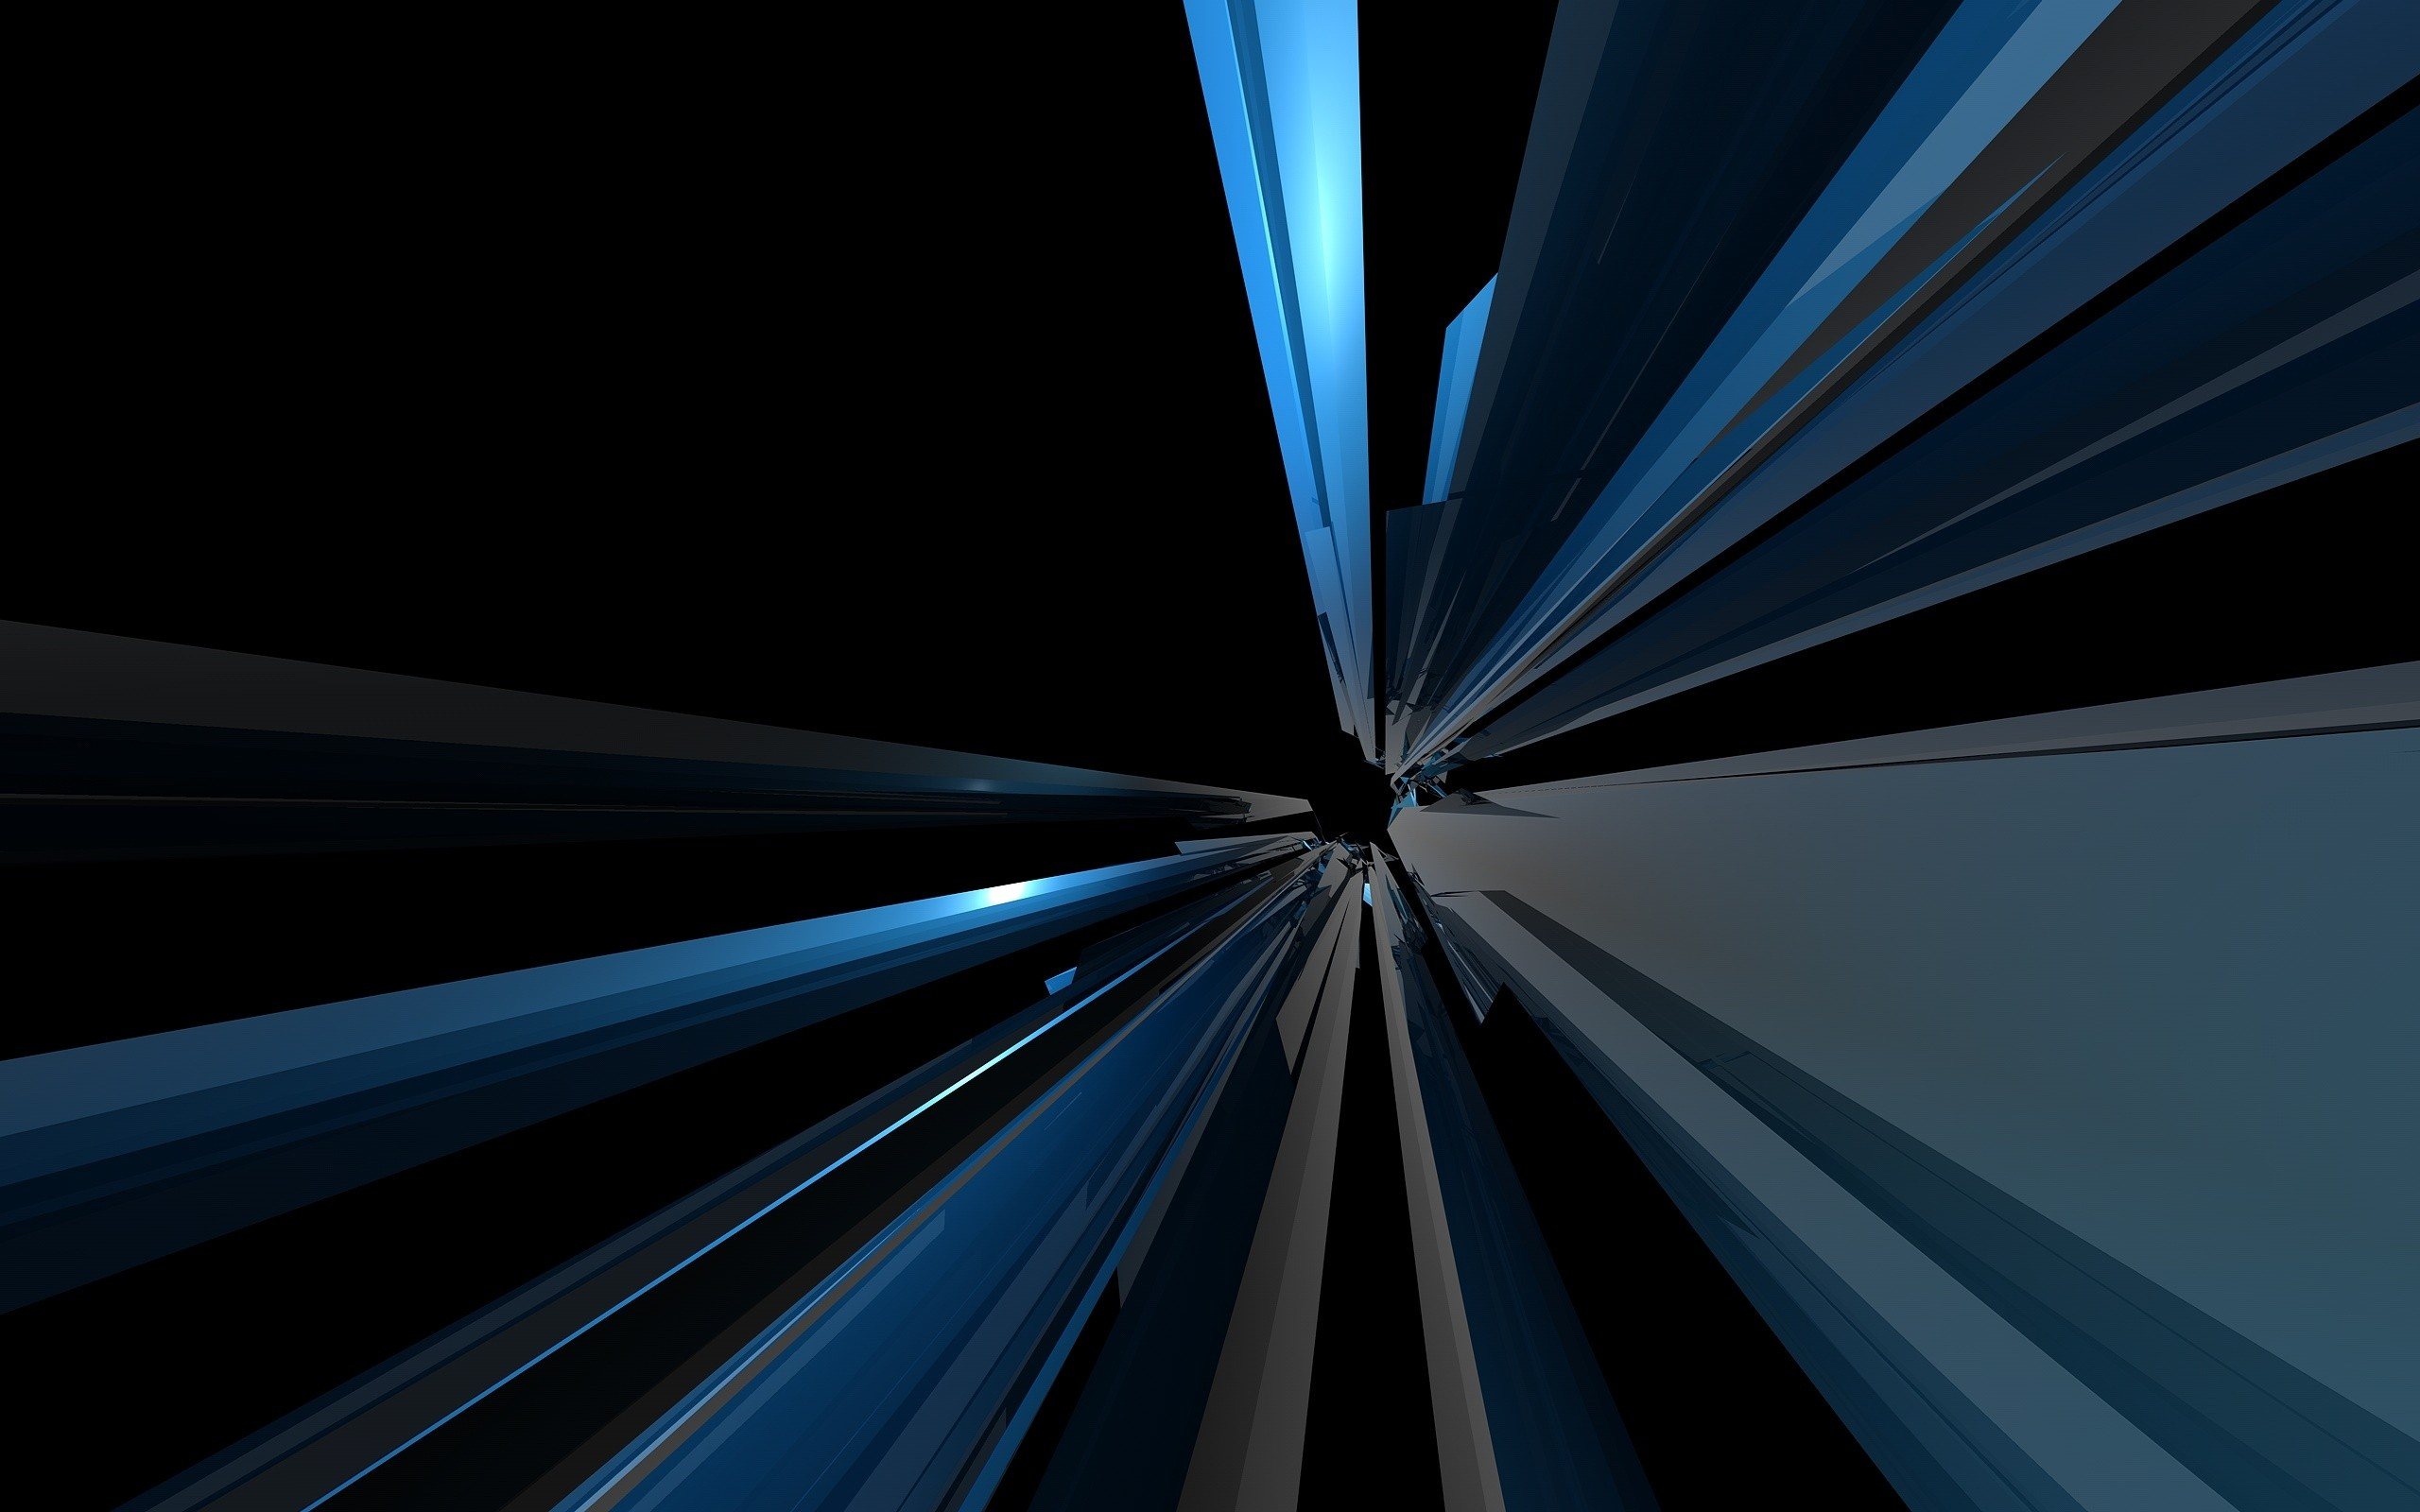 2560x1600 Abstract Blue Lines desktop PC and Mac wallpaper